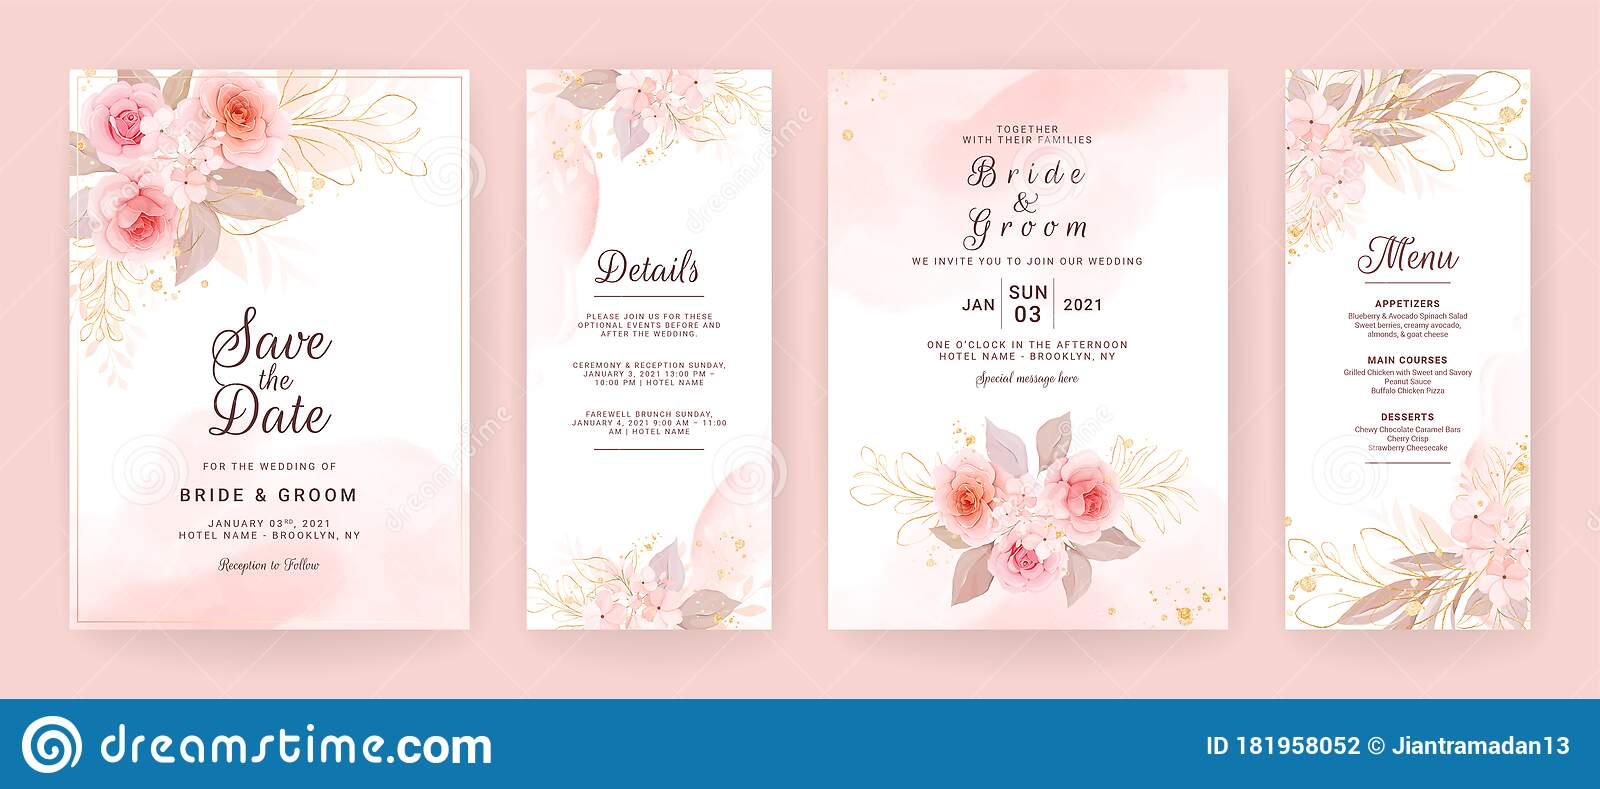 Elegant Wedding Invitation Card Template Set With Watercolor And